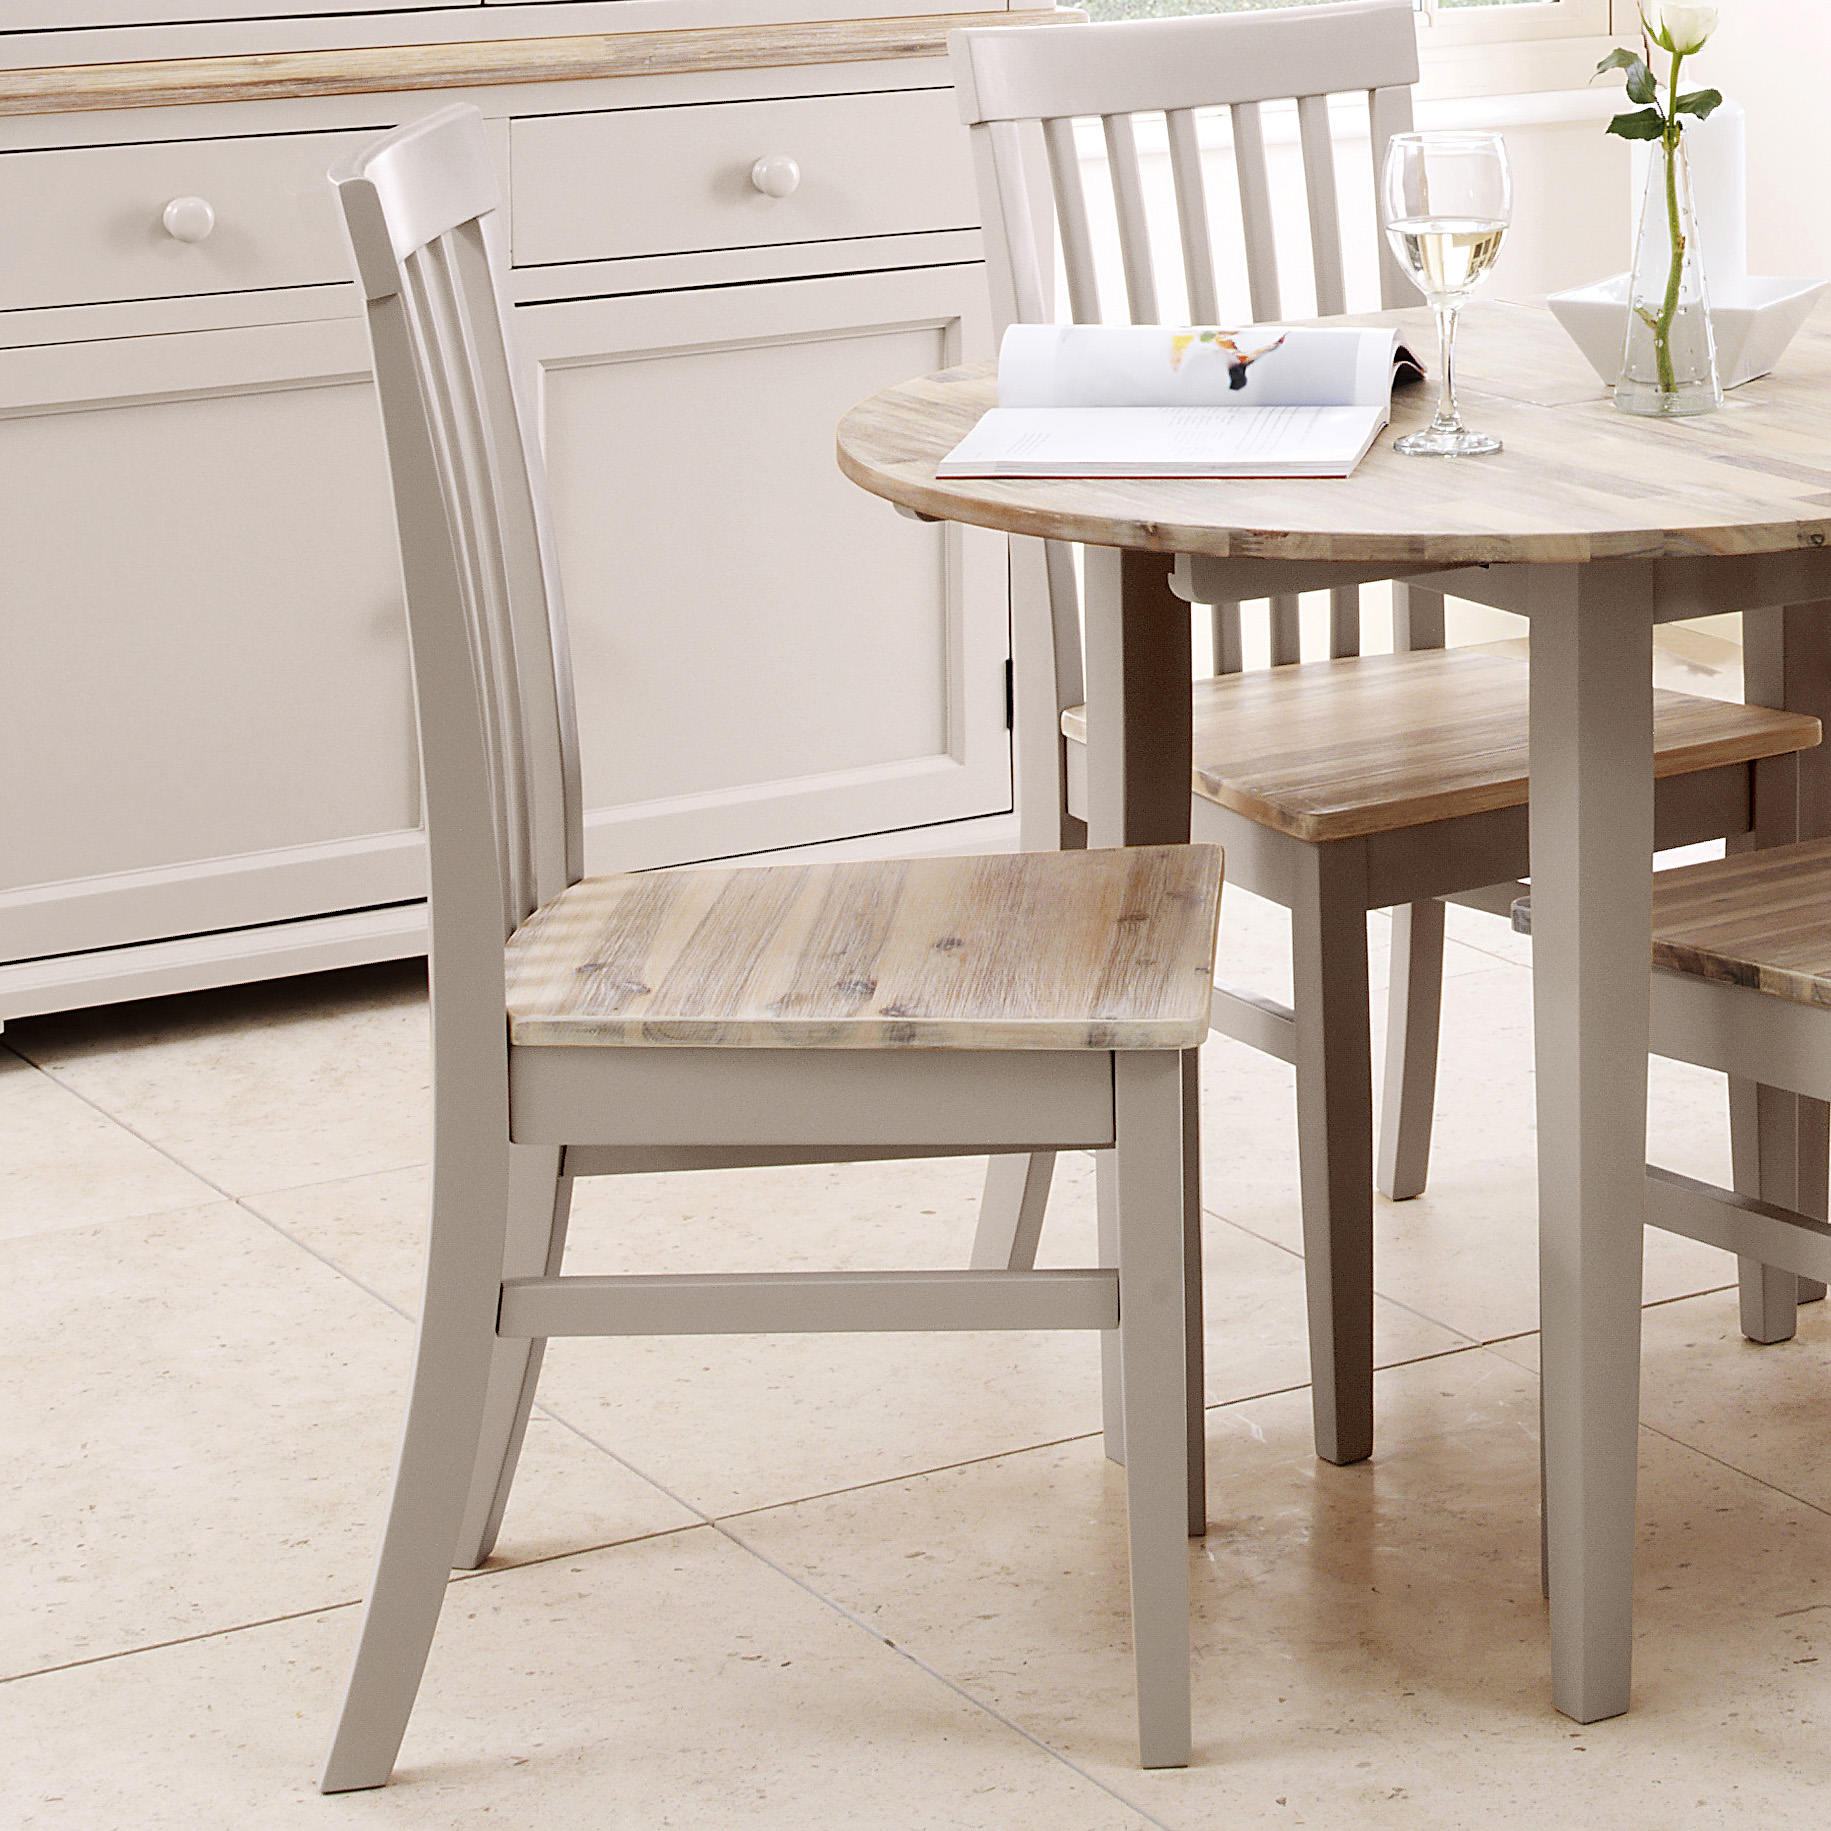 High Backed Kitchen Chairs: Florence High Back Chair, Quality Truffle Kitchen Dining